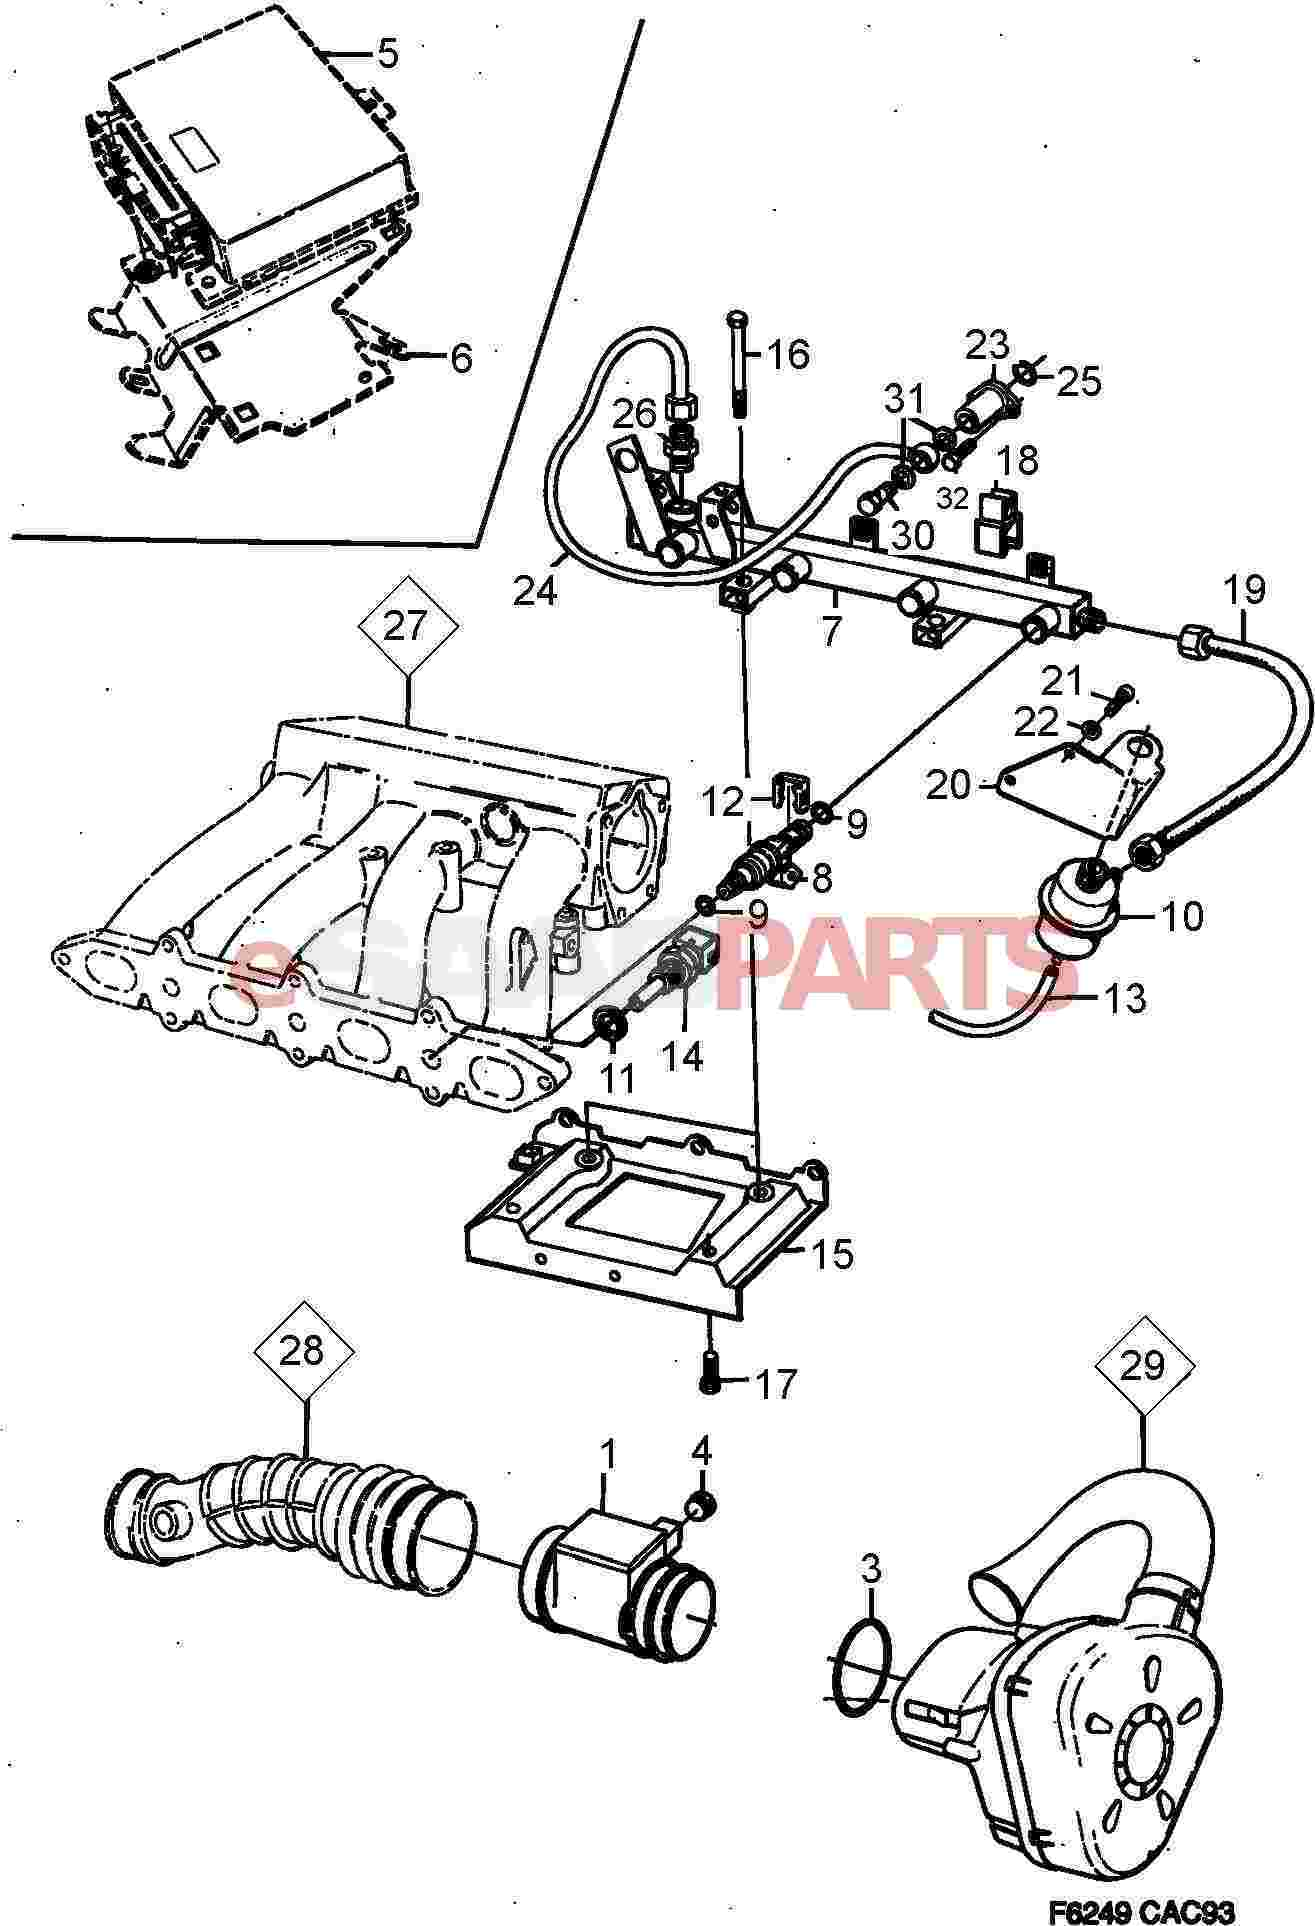 service manual  1986 saab 900 hydraulic fan pump removal